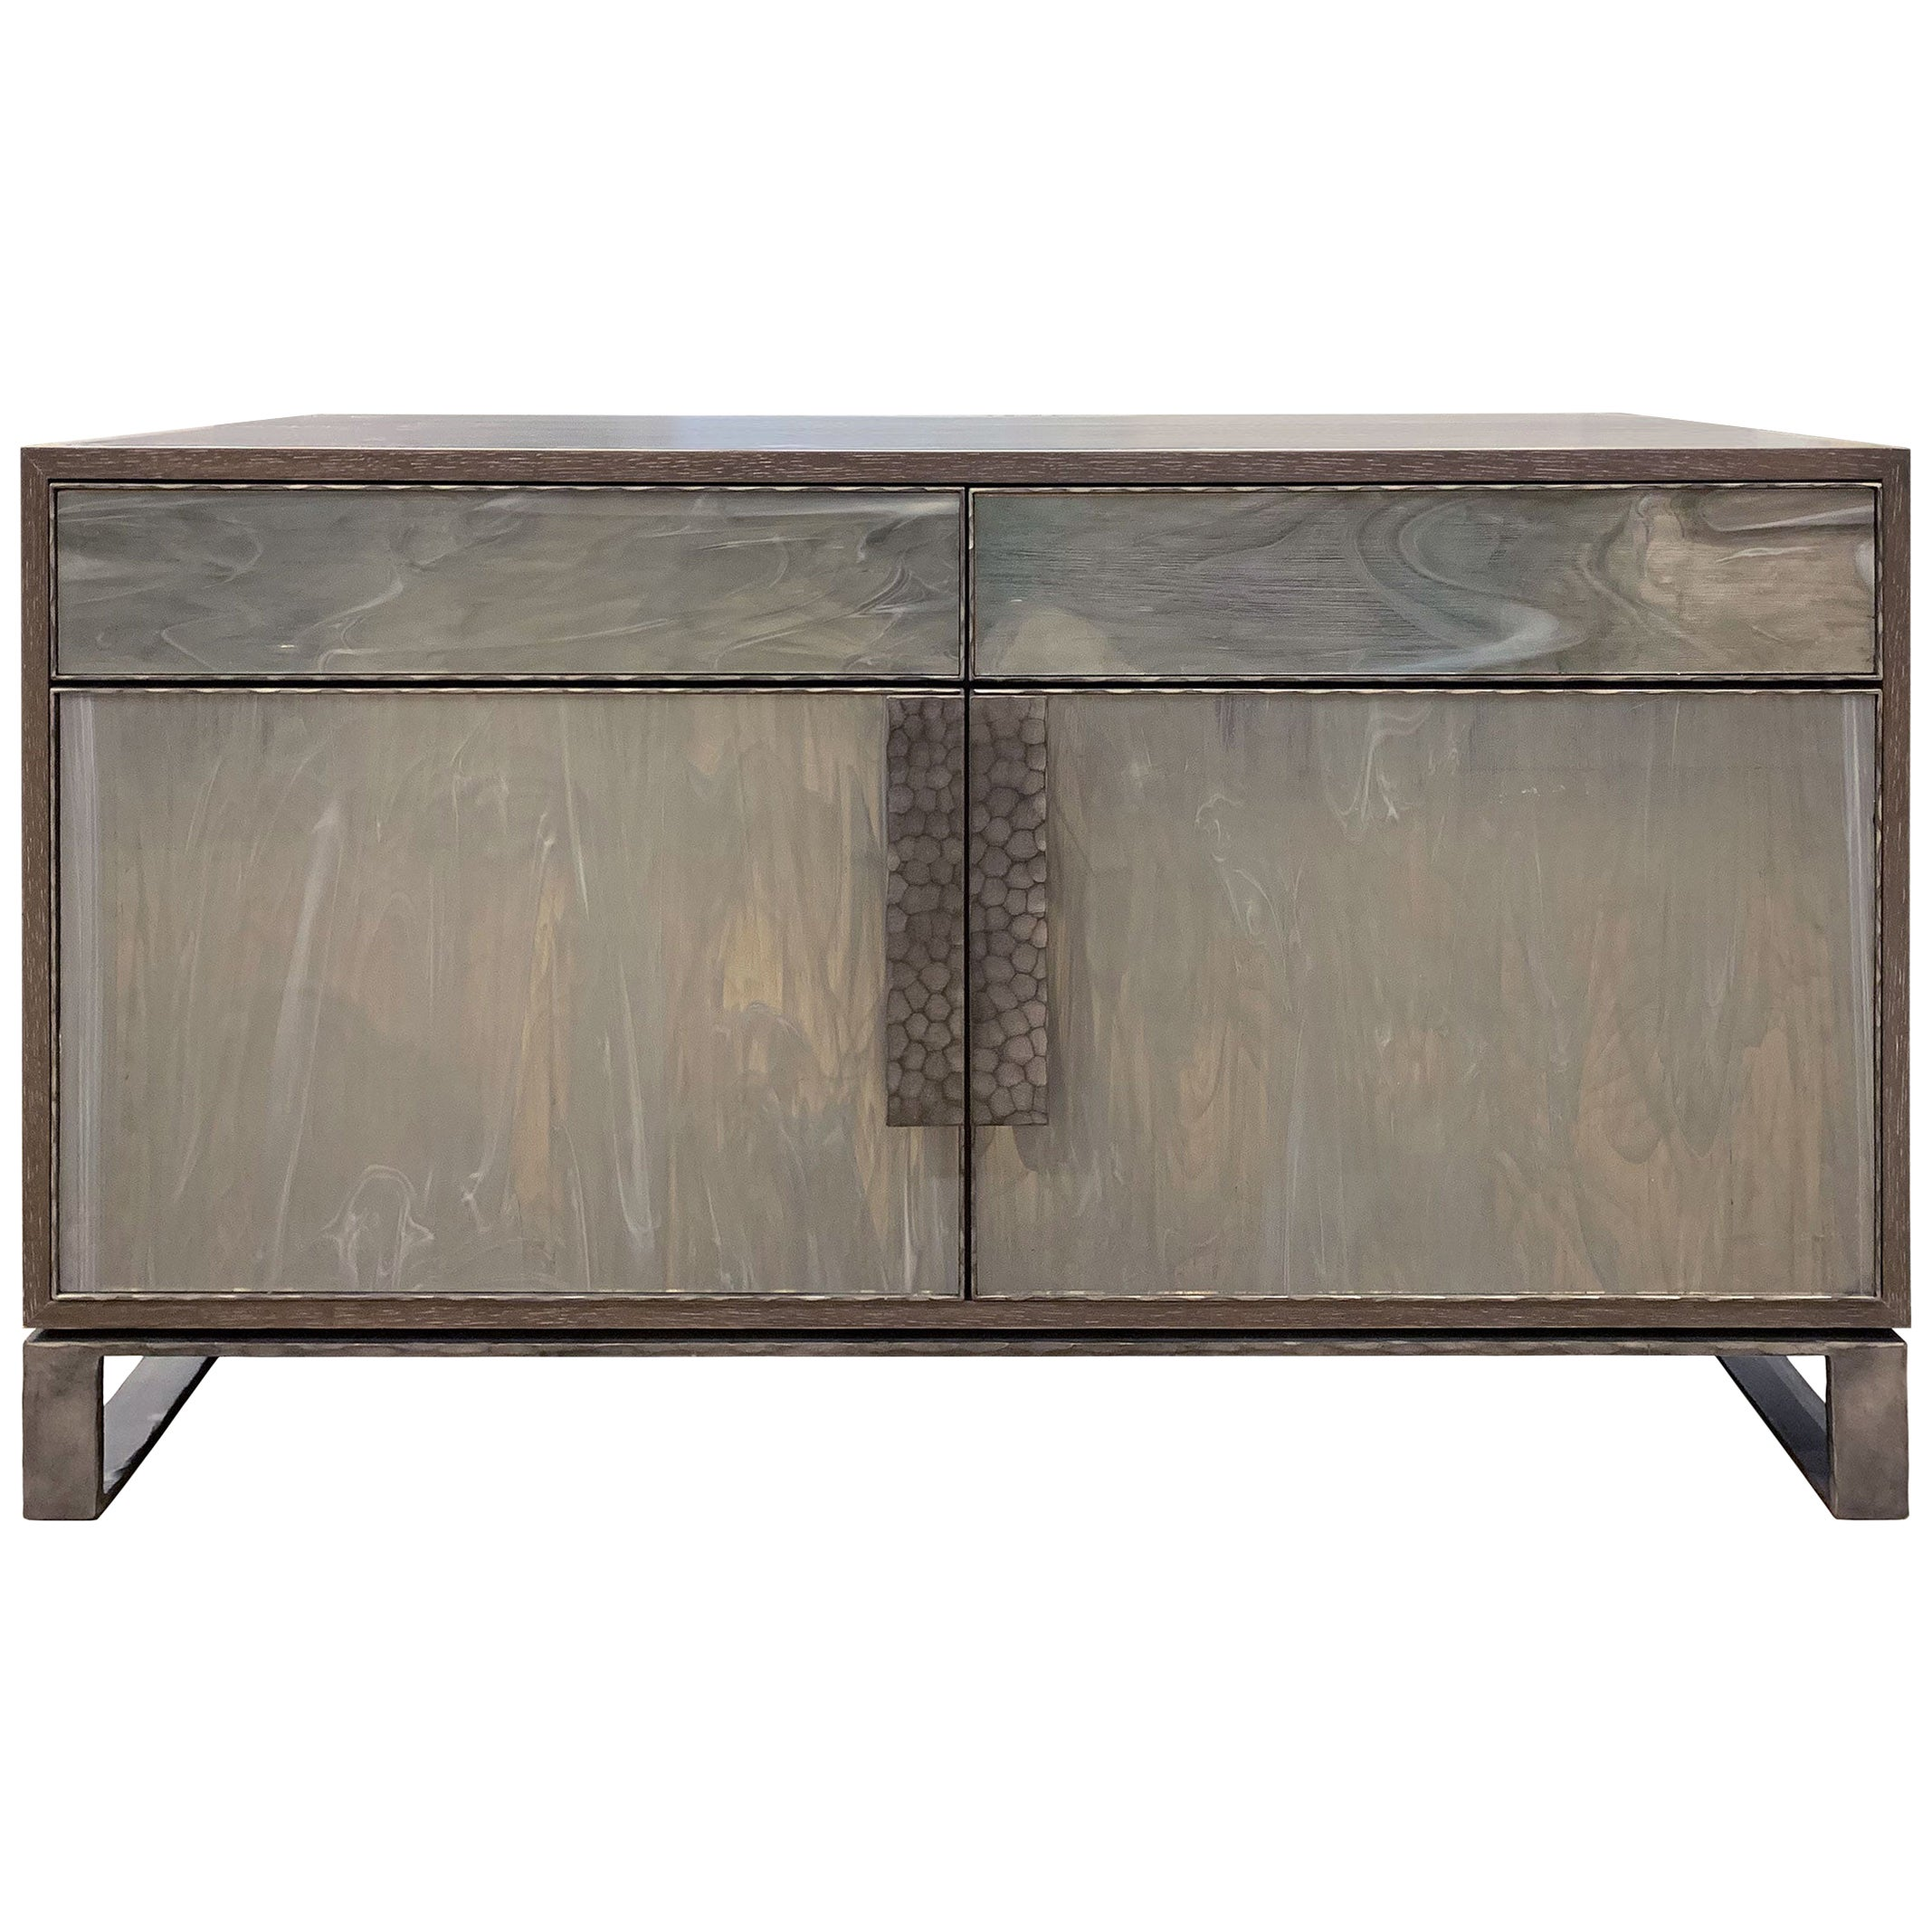 Customizable Chelsea Gray Glass Credenza with Hammered Metal Base by Ercole Home